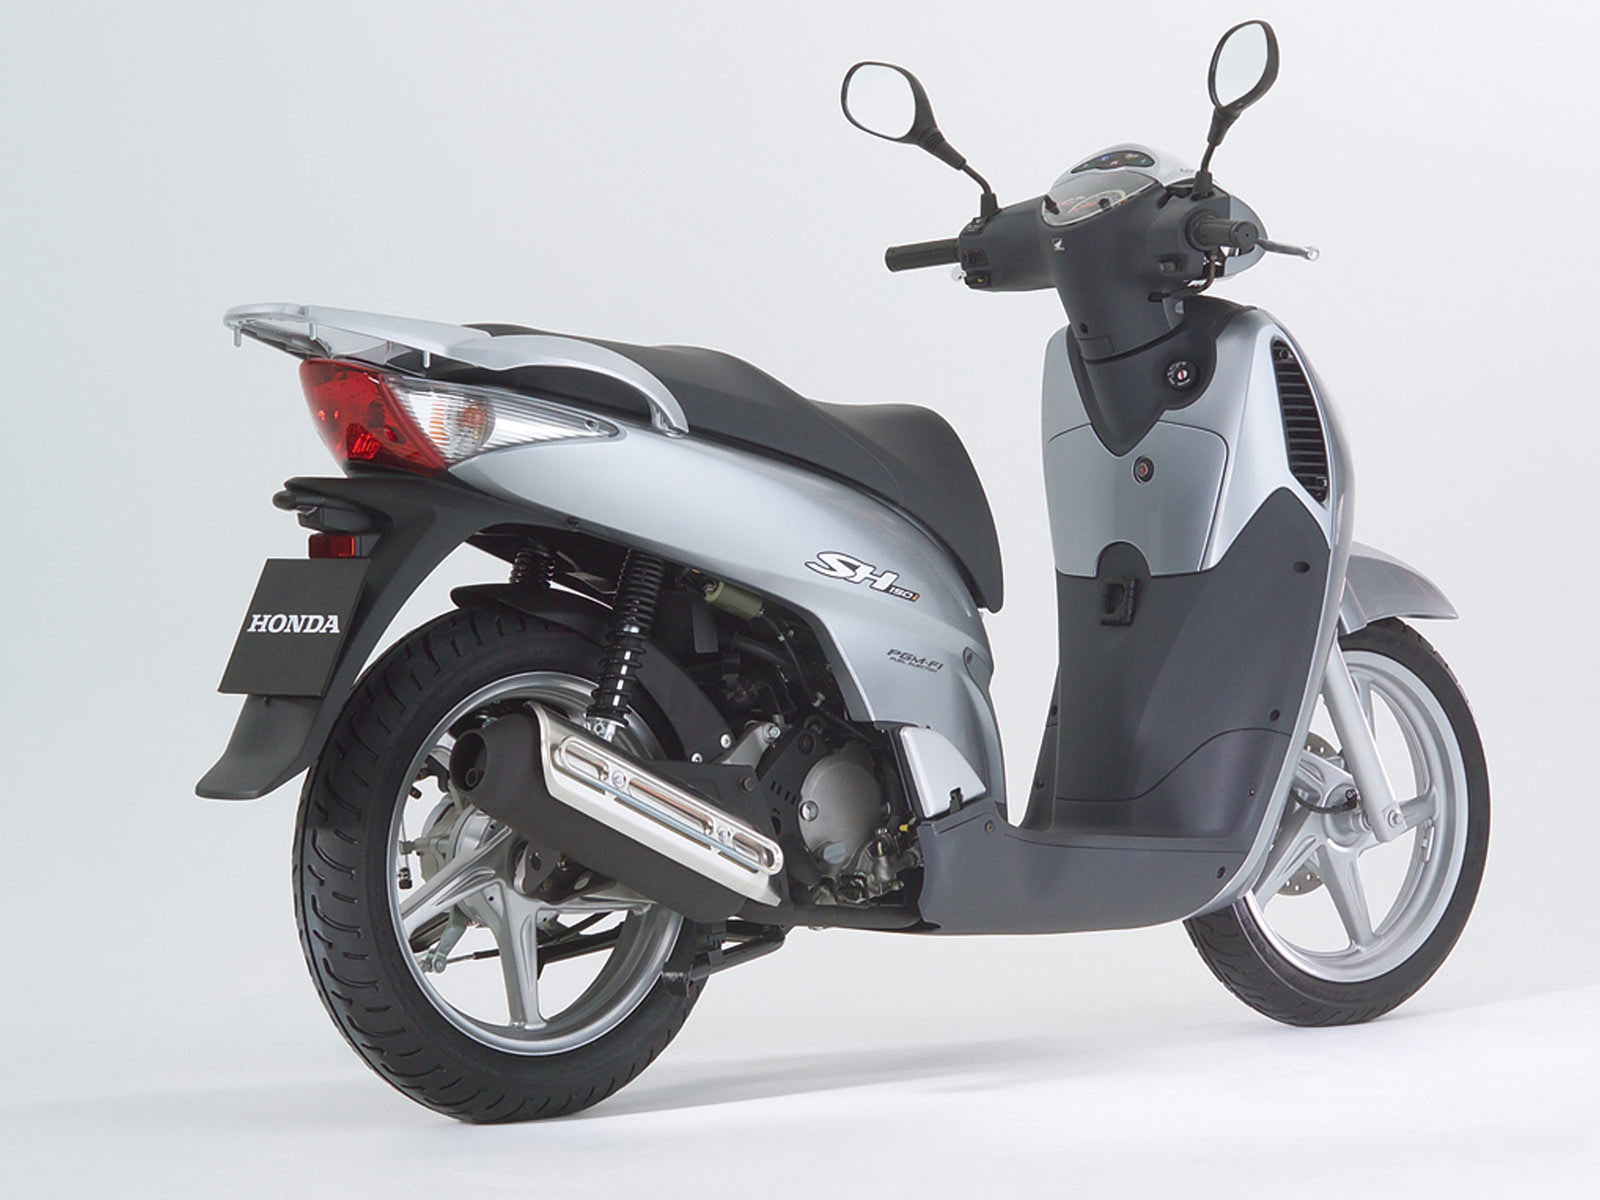 2005 honda sh150i accident lawyers scooter pictures. Black Bedroom Furniture Sets. Home Design Ideas